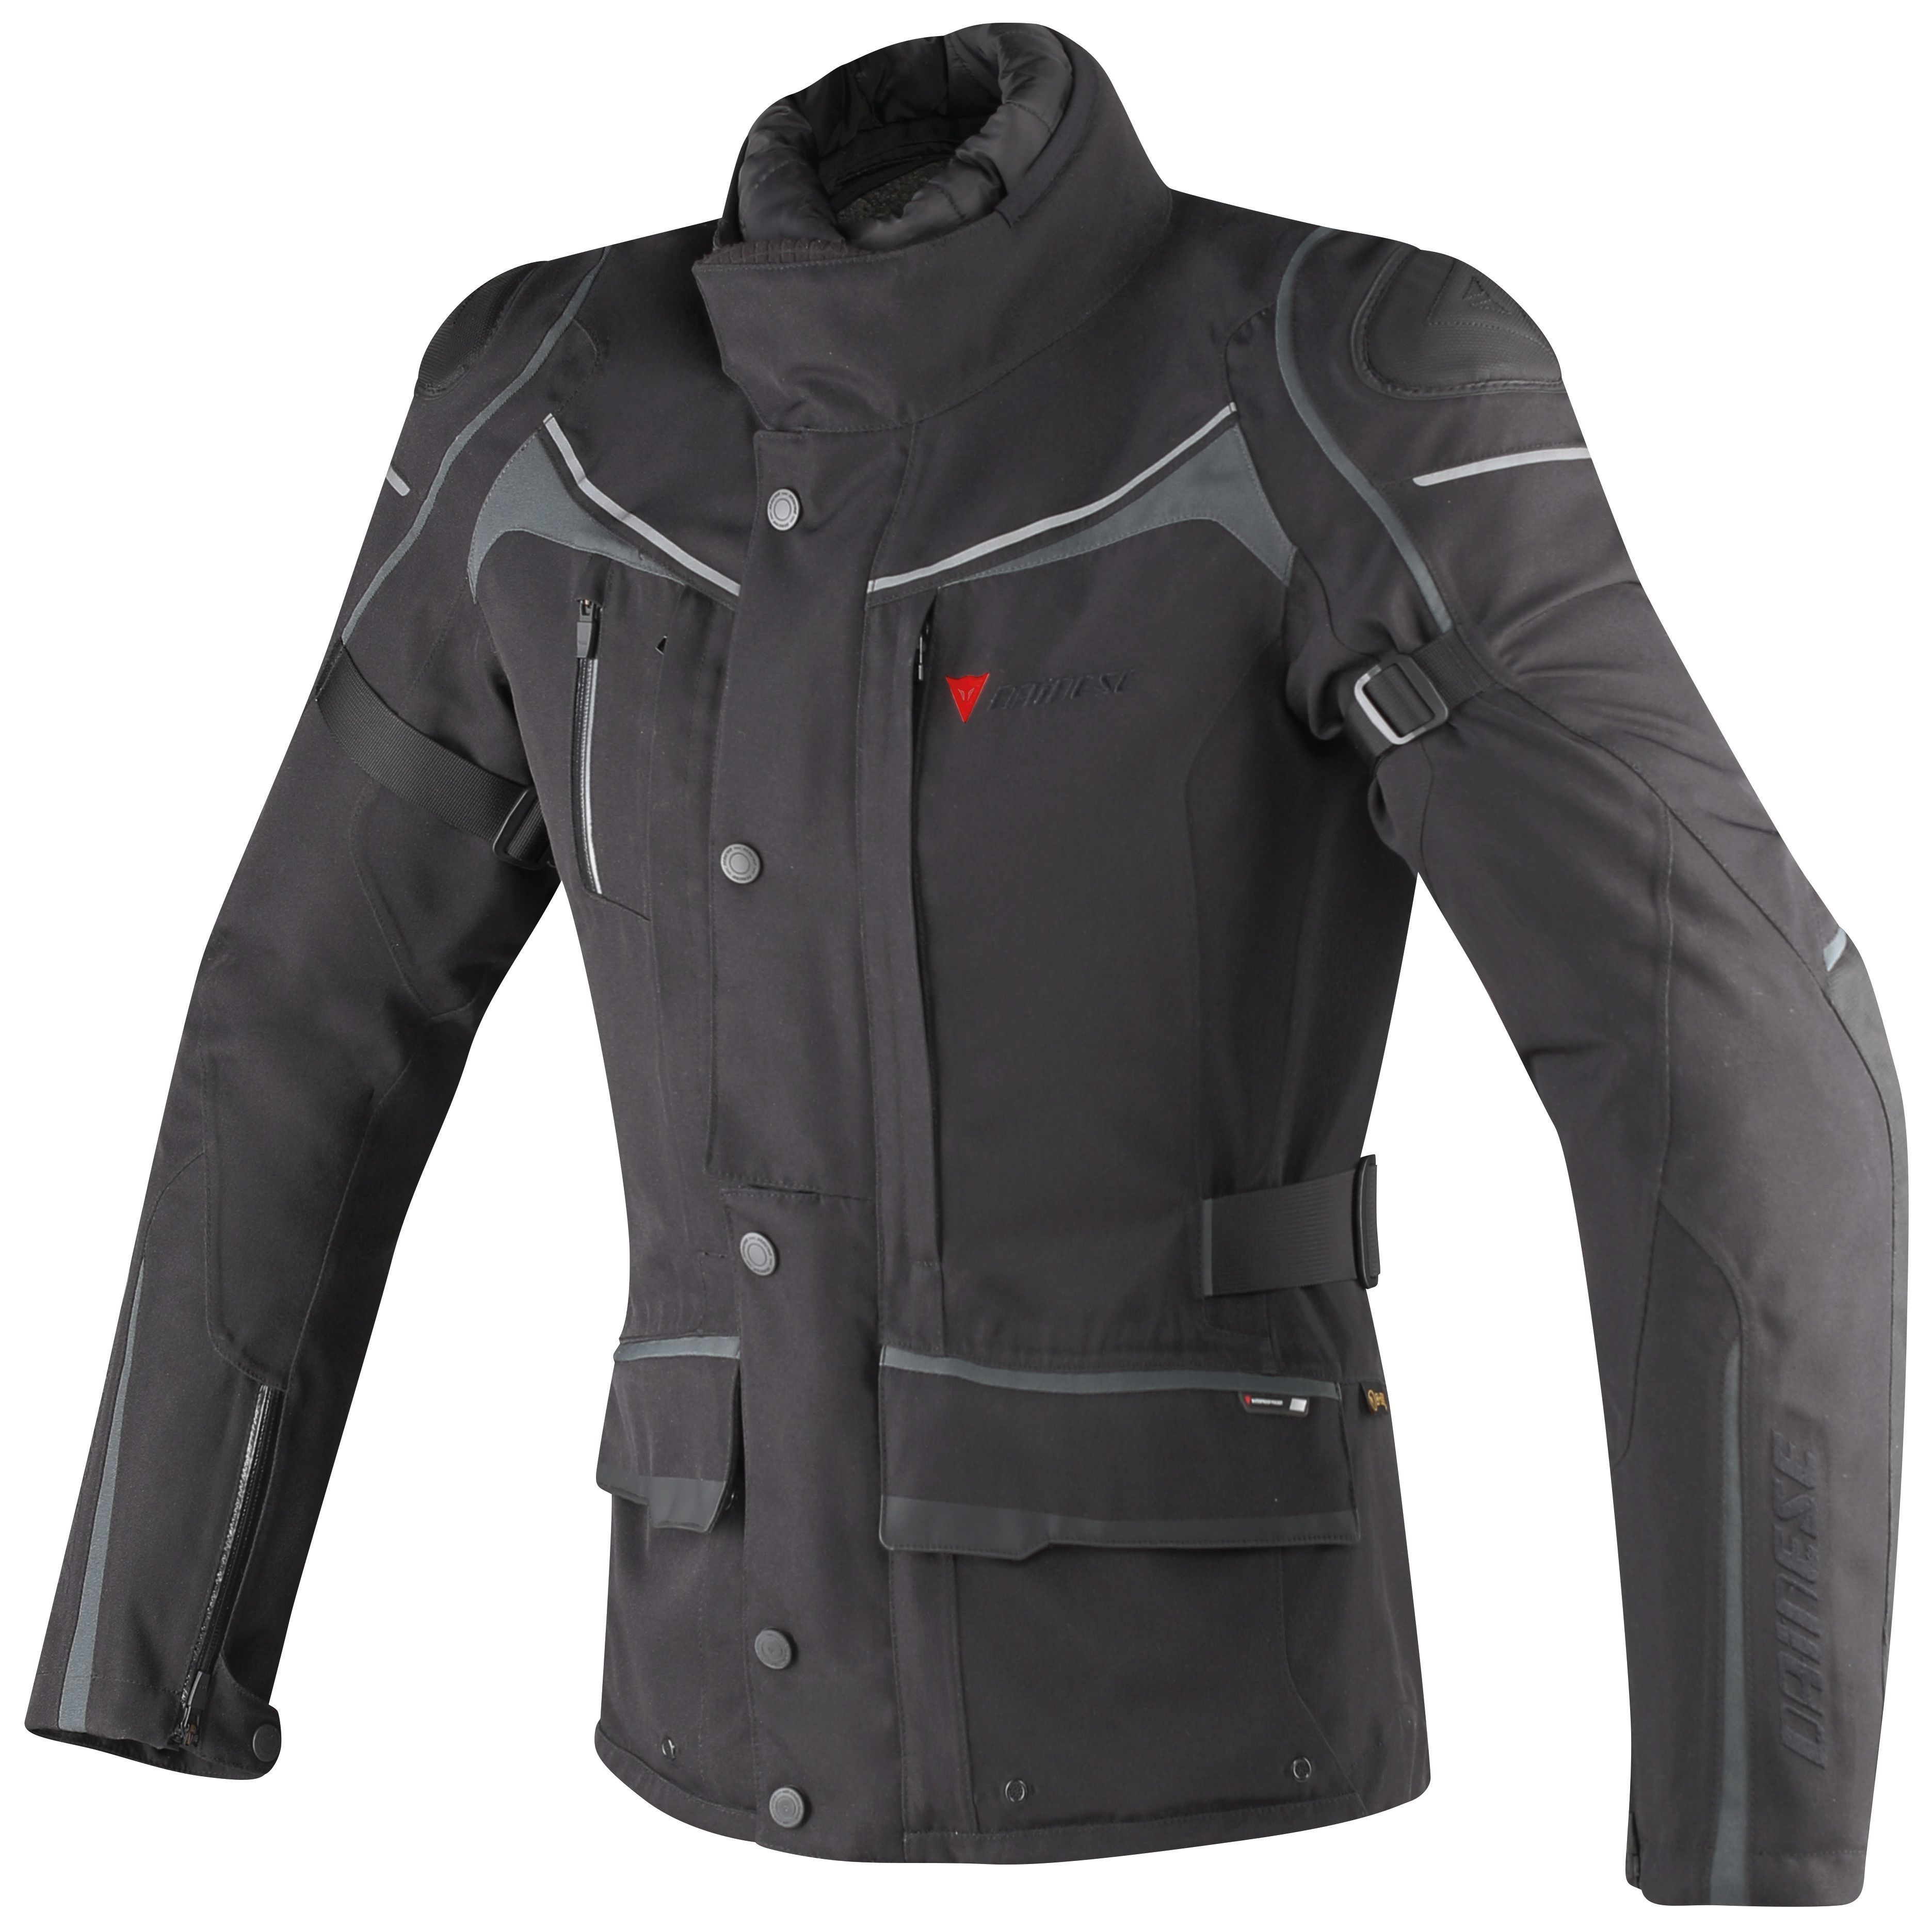 Dainese d blizzard d dry jacket revzilla for D garage dainese corbeil horaires